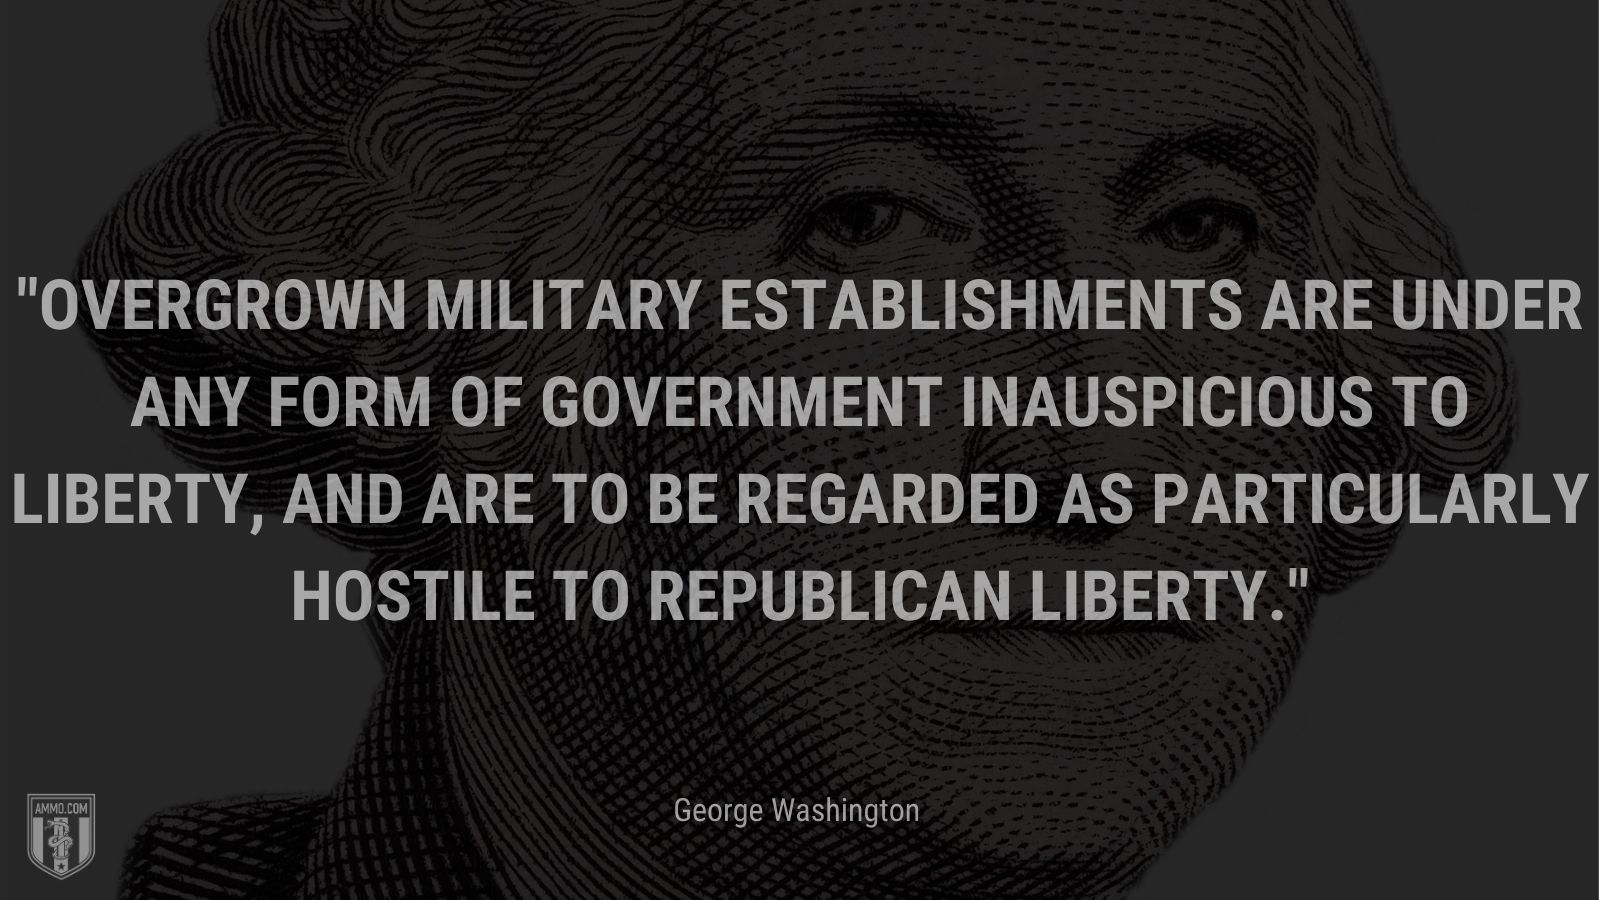 """""""Overgrown military establishments are under any form of government inauspicious to liberty, and are to be regarded as particularly hostile to republican liberty."""" - George Washington"""